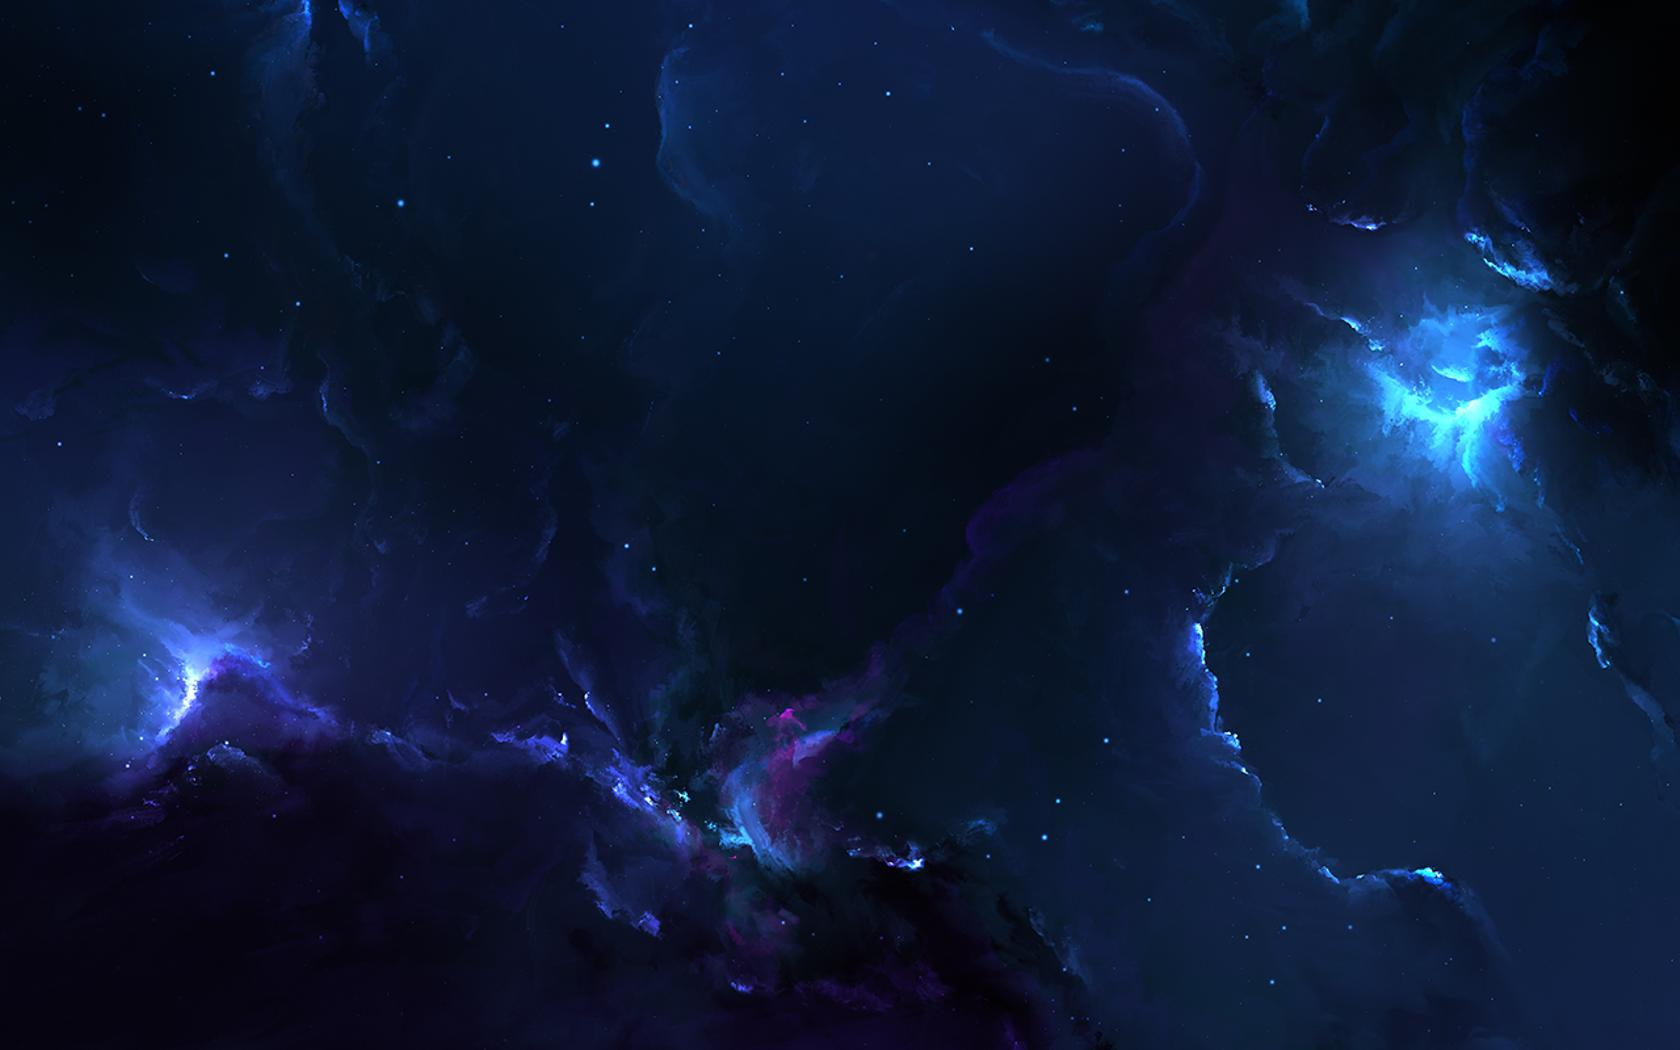 Abstract Dark Sky With Blue Light